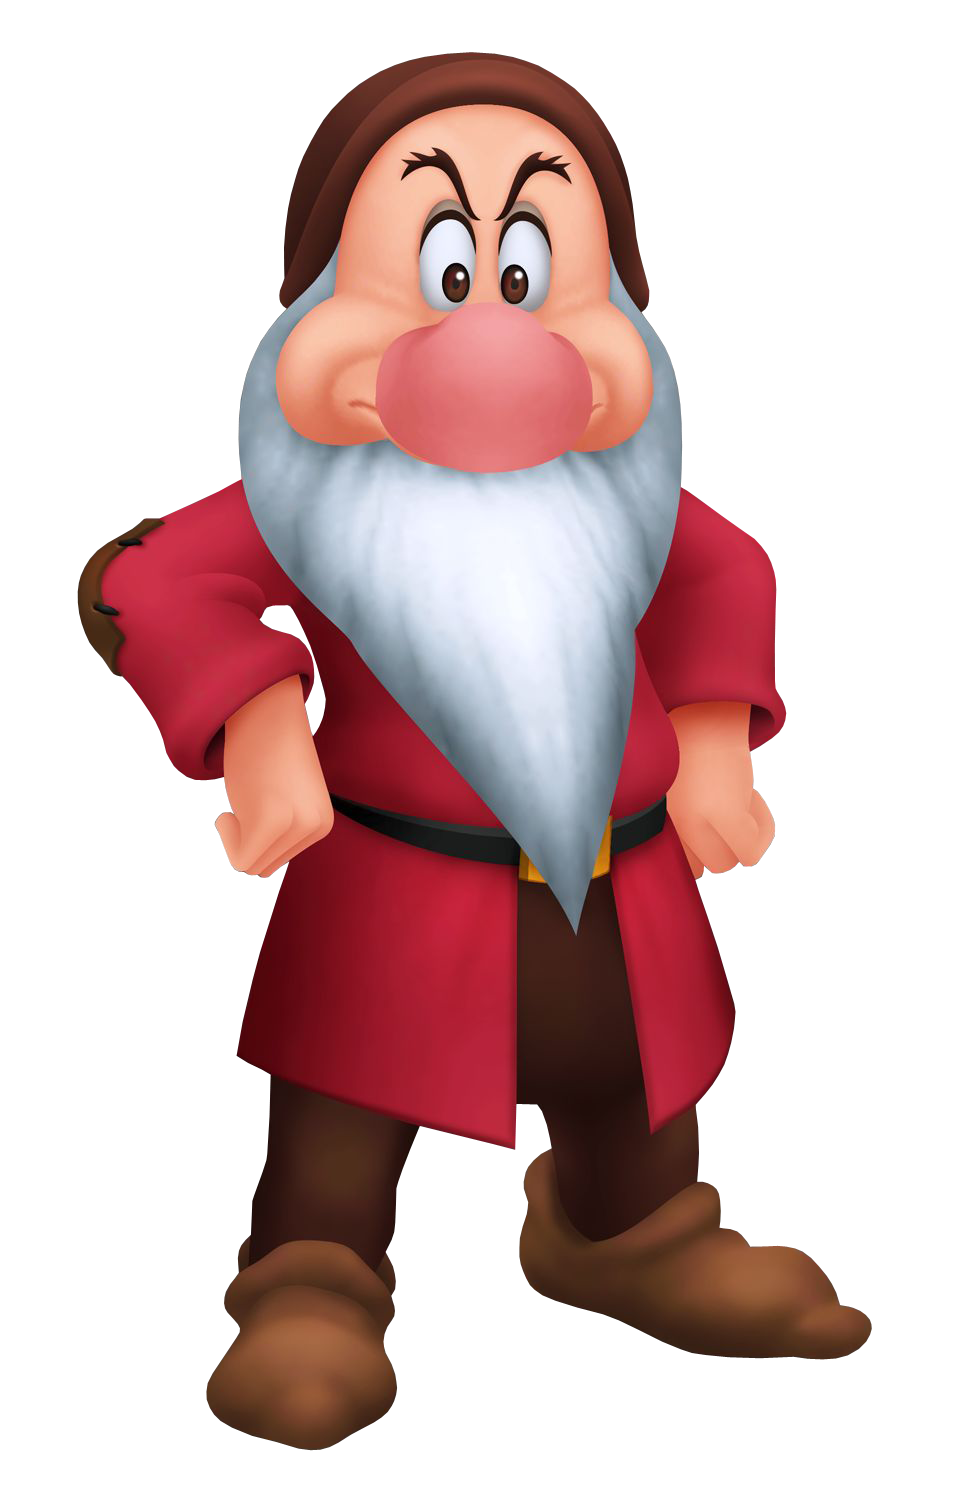 Image grumpy bbs png. Maze clipart snow white